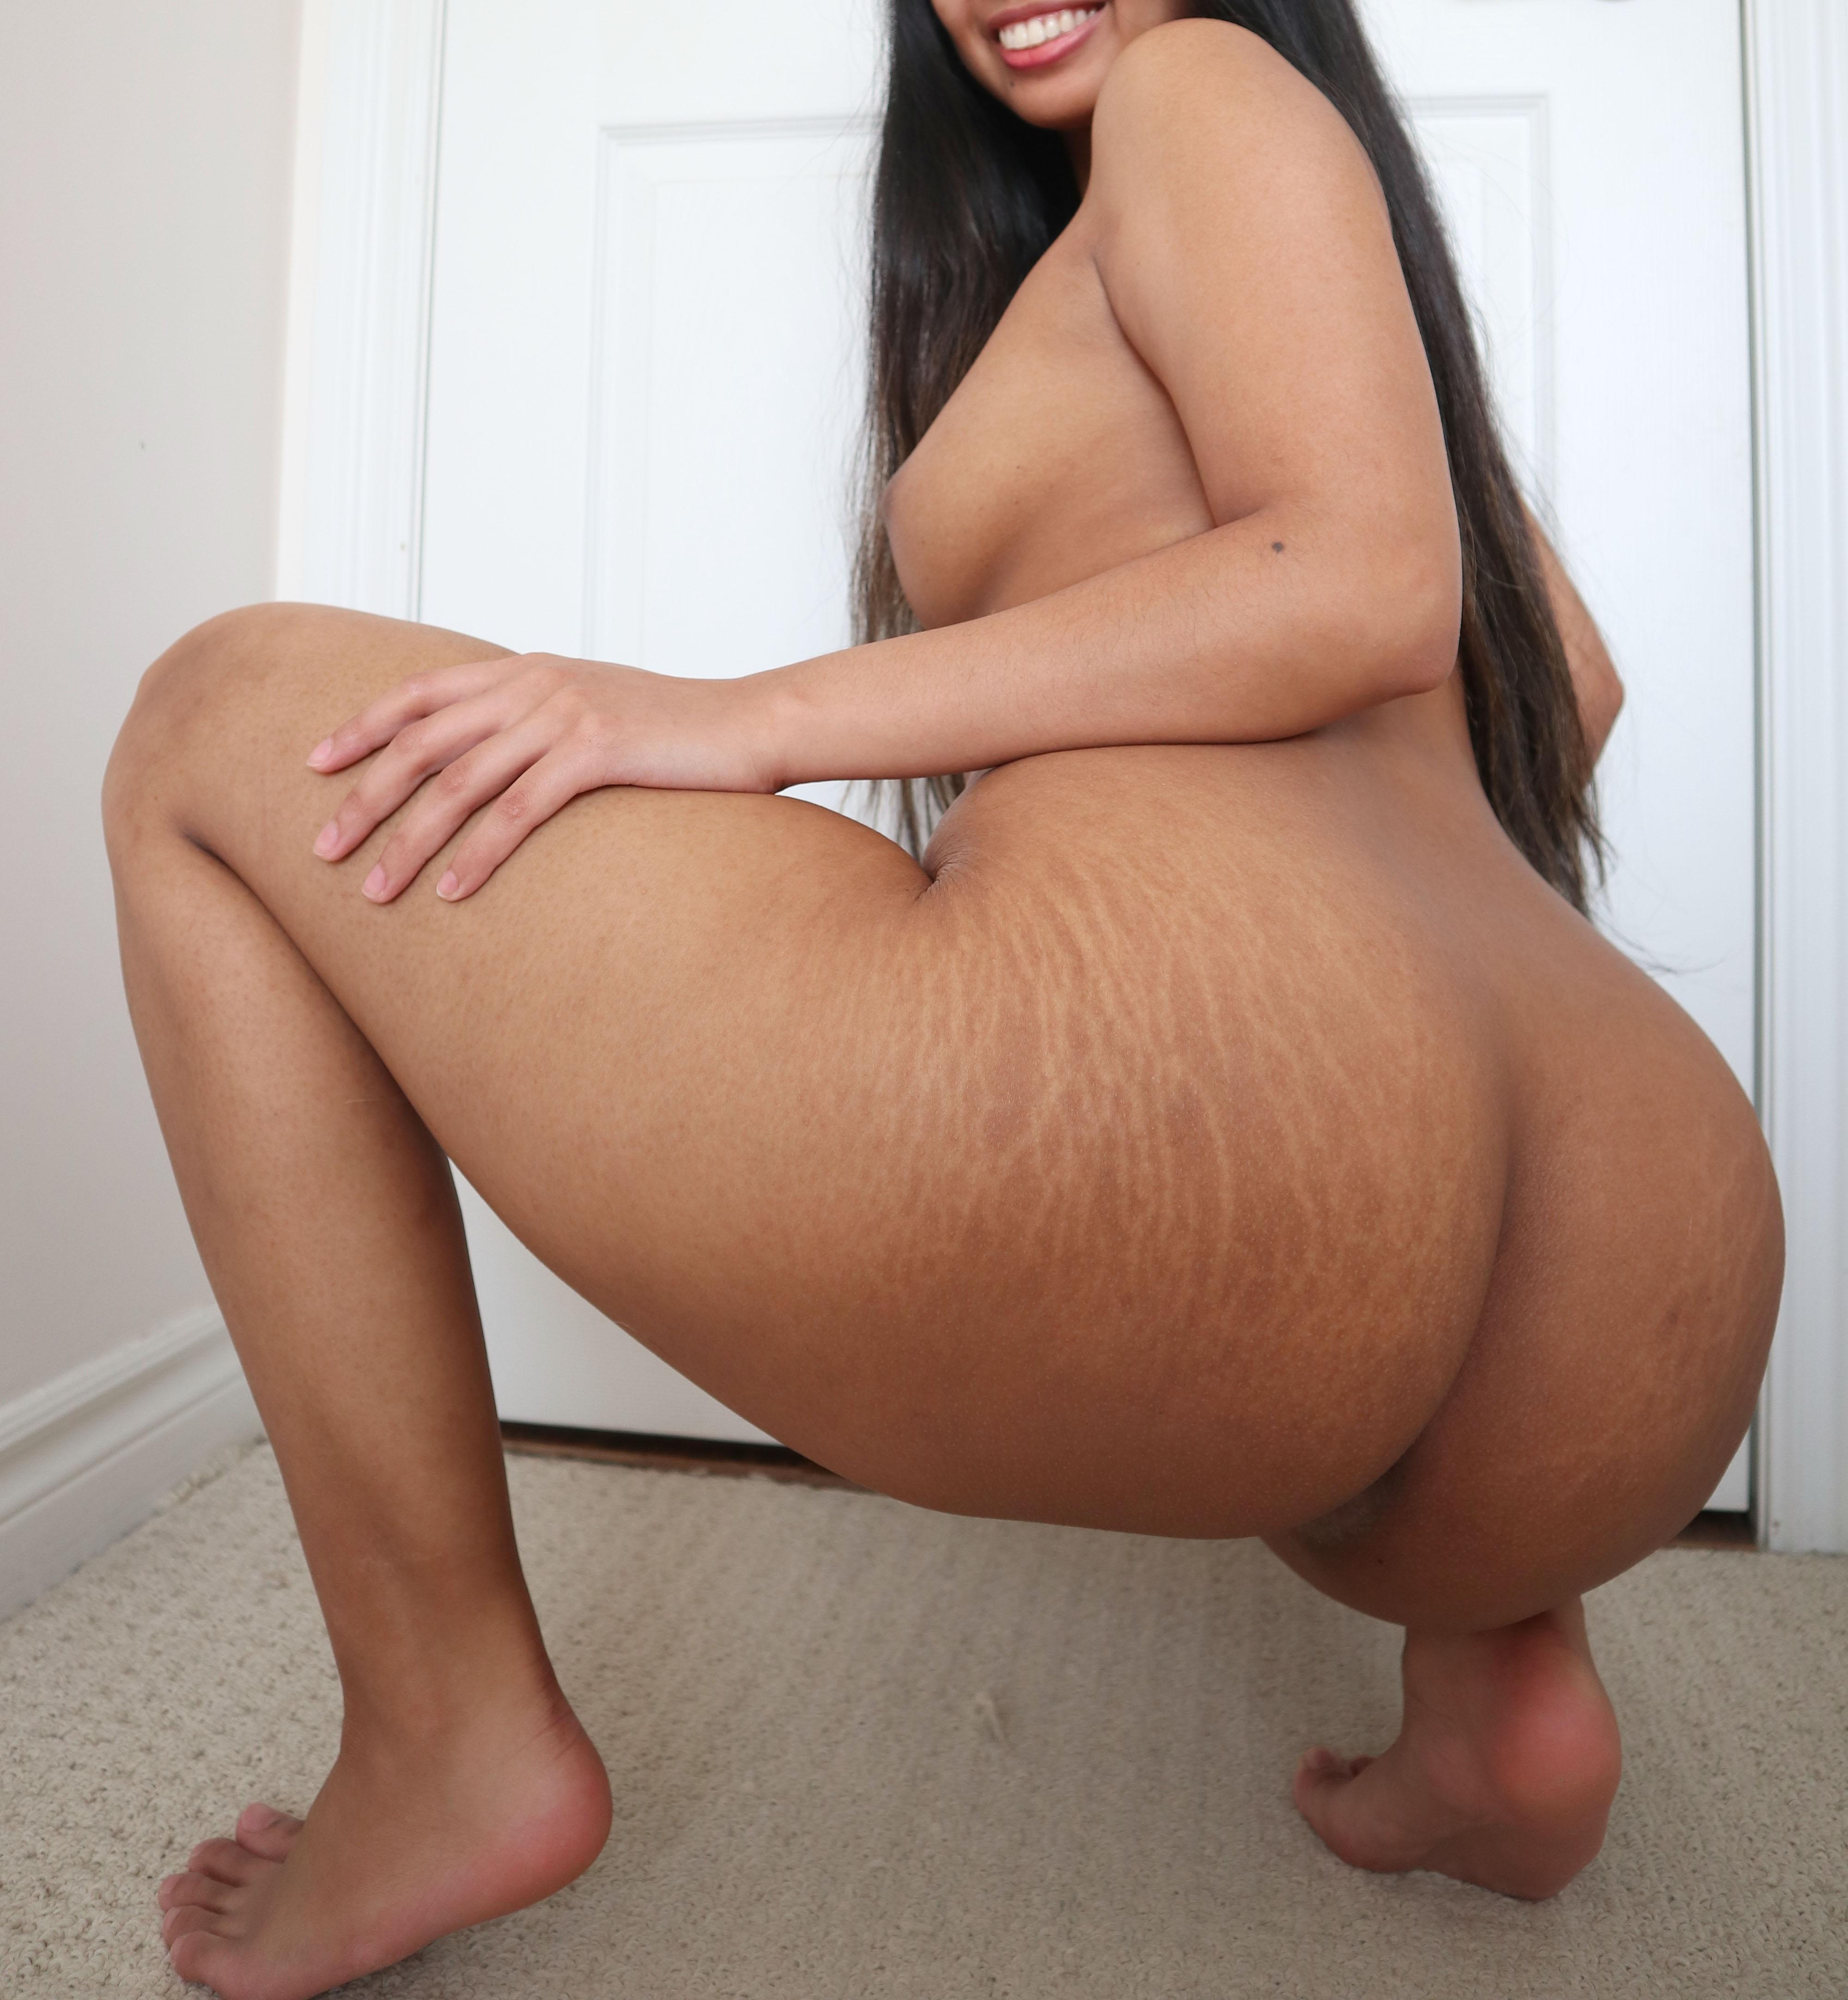 One of our naked asian pics called Do you have something for me to bounce my fat filipina ass on?